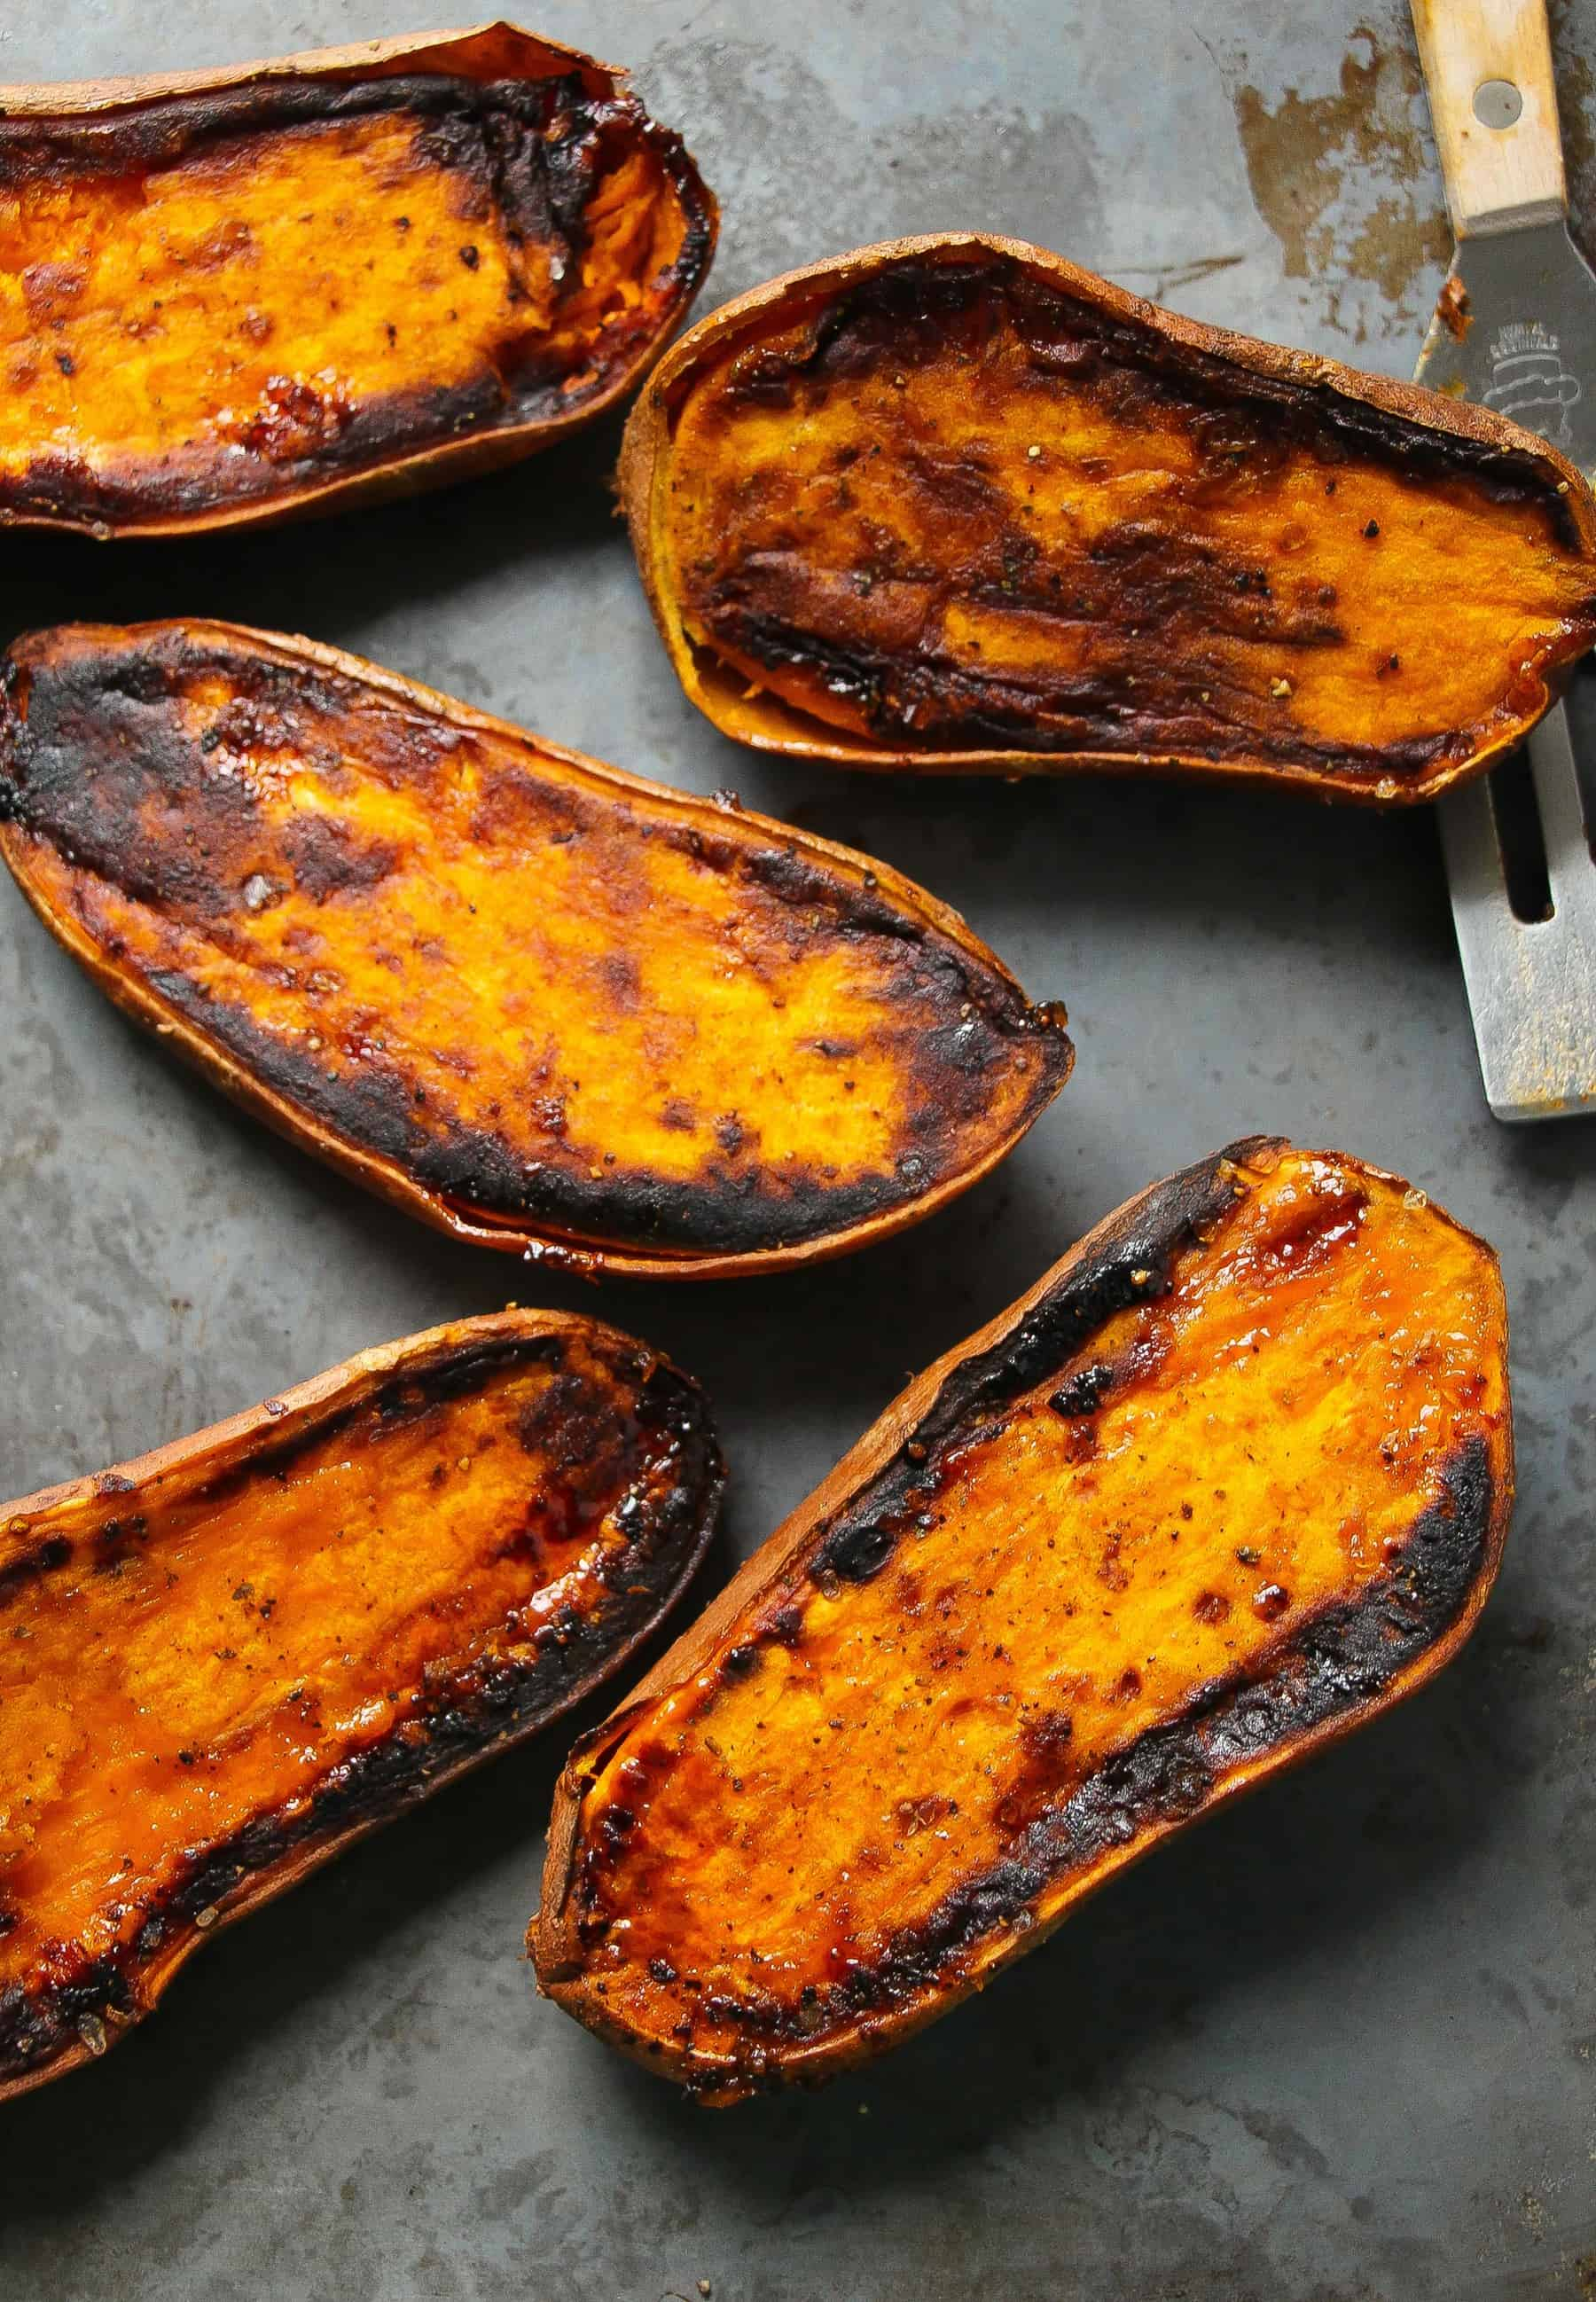 What do you cook sweet potatoes at